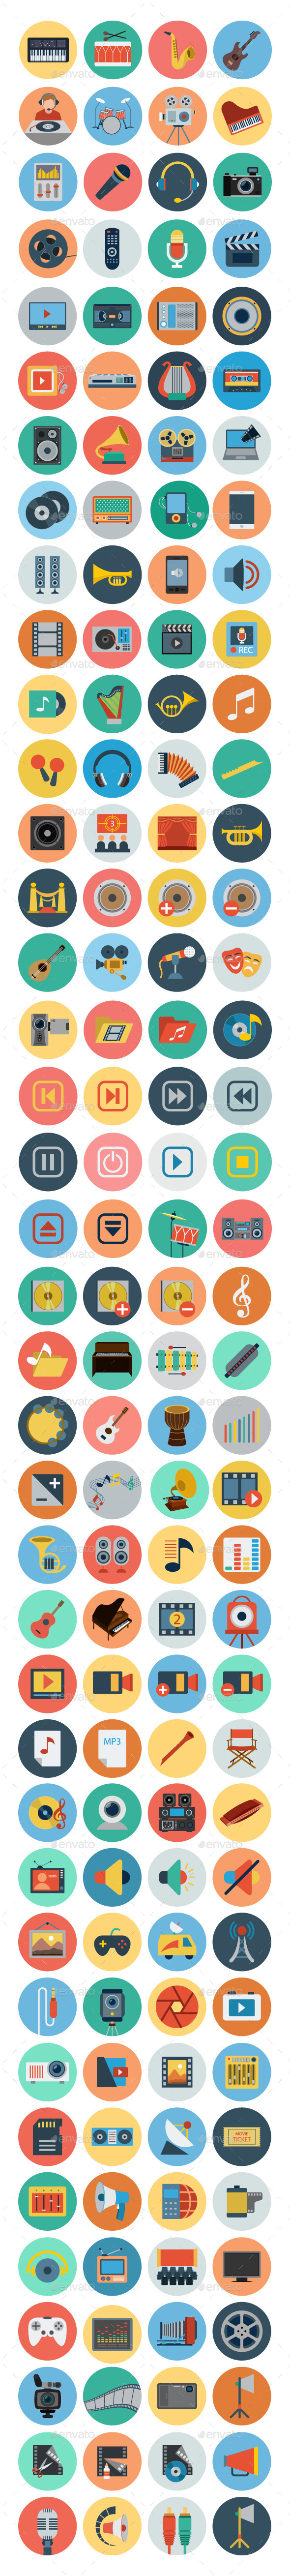 GraphicRiver 150& Multimedia Flat Icons 10615922